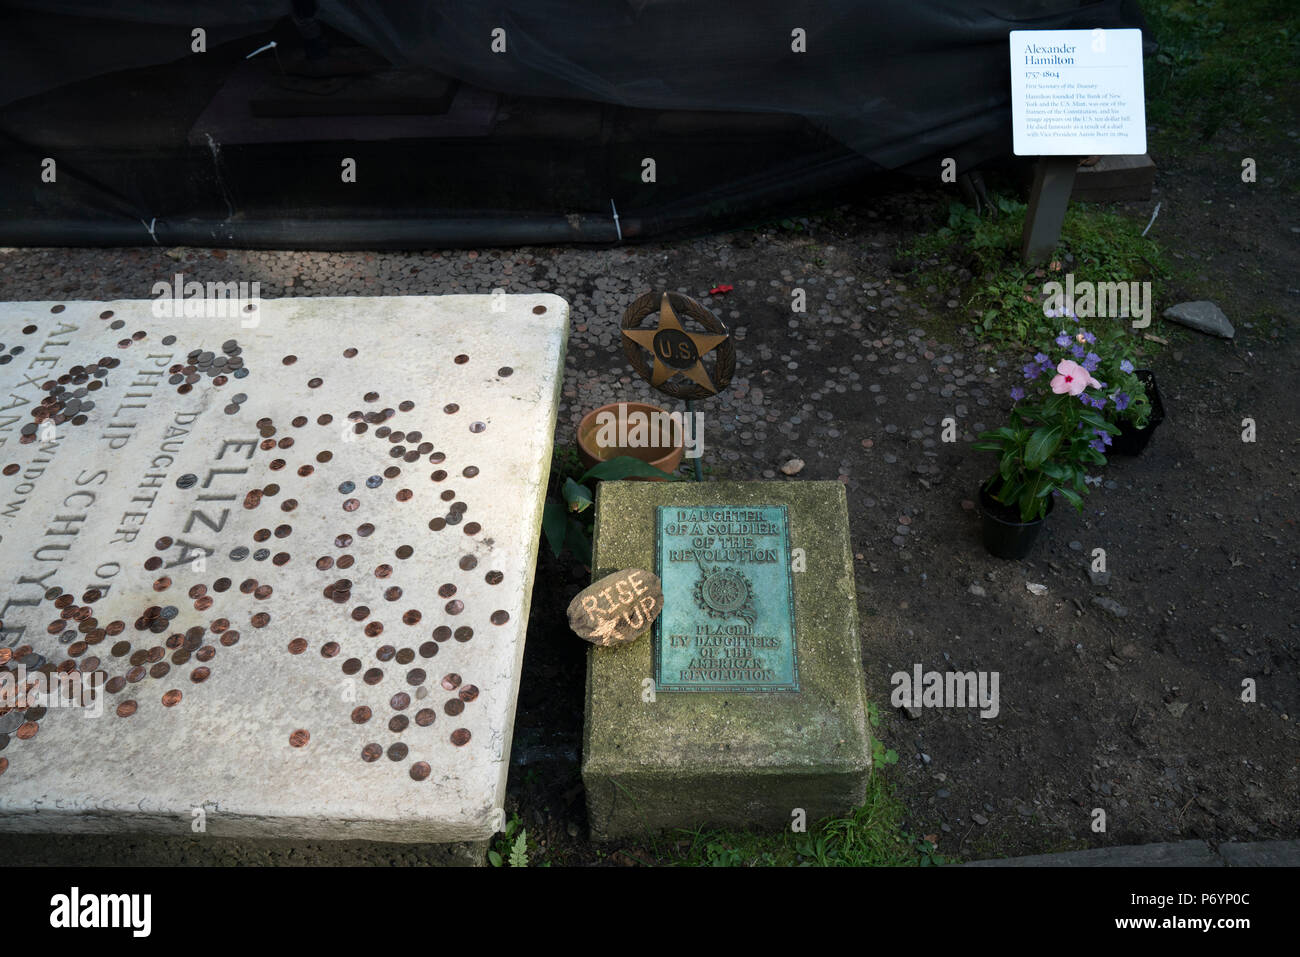 Alexander Hamilton's grave in the churchyard of Trinity Wall Street is shrouded in netting for cleaning, but the grave of his wife, Eliza, is visible. - Stock Image